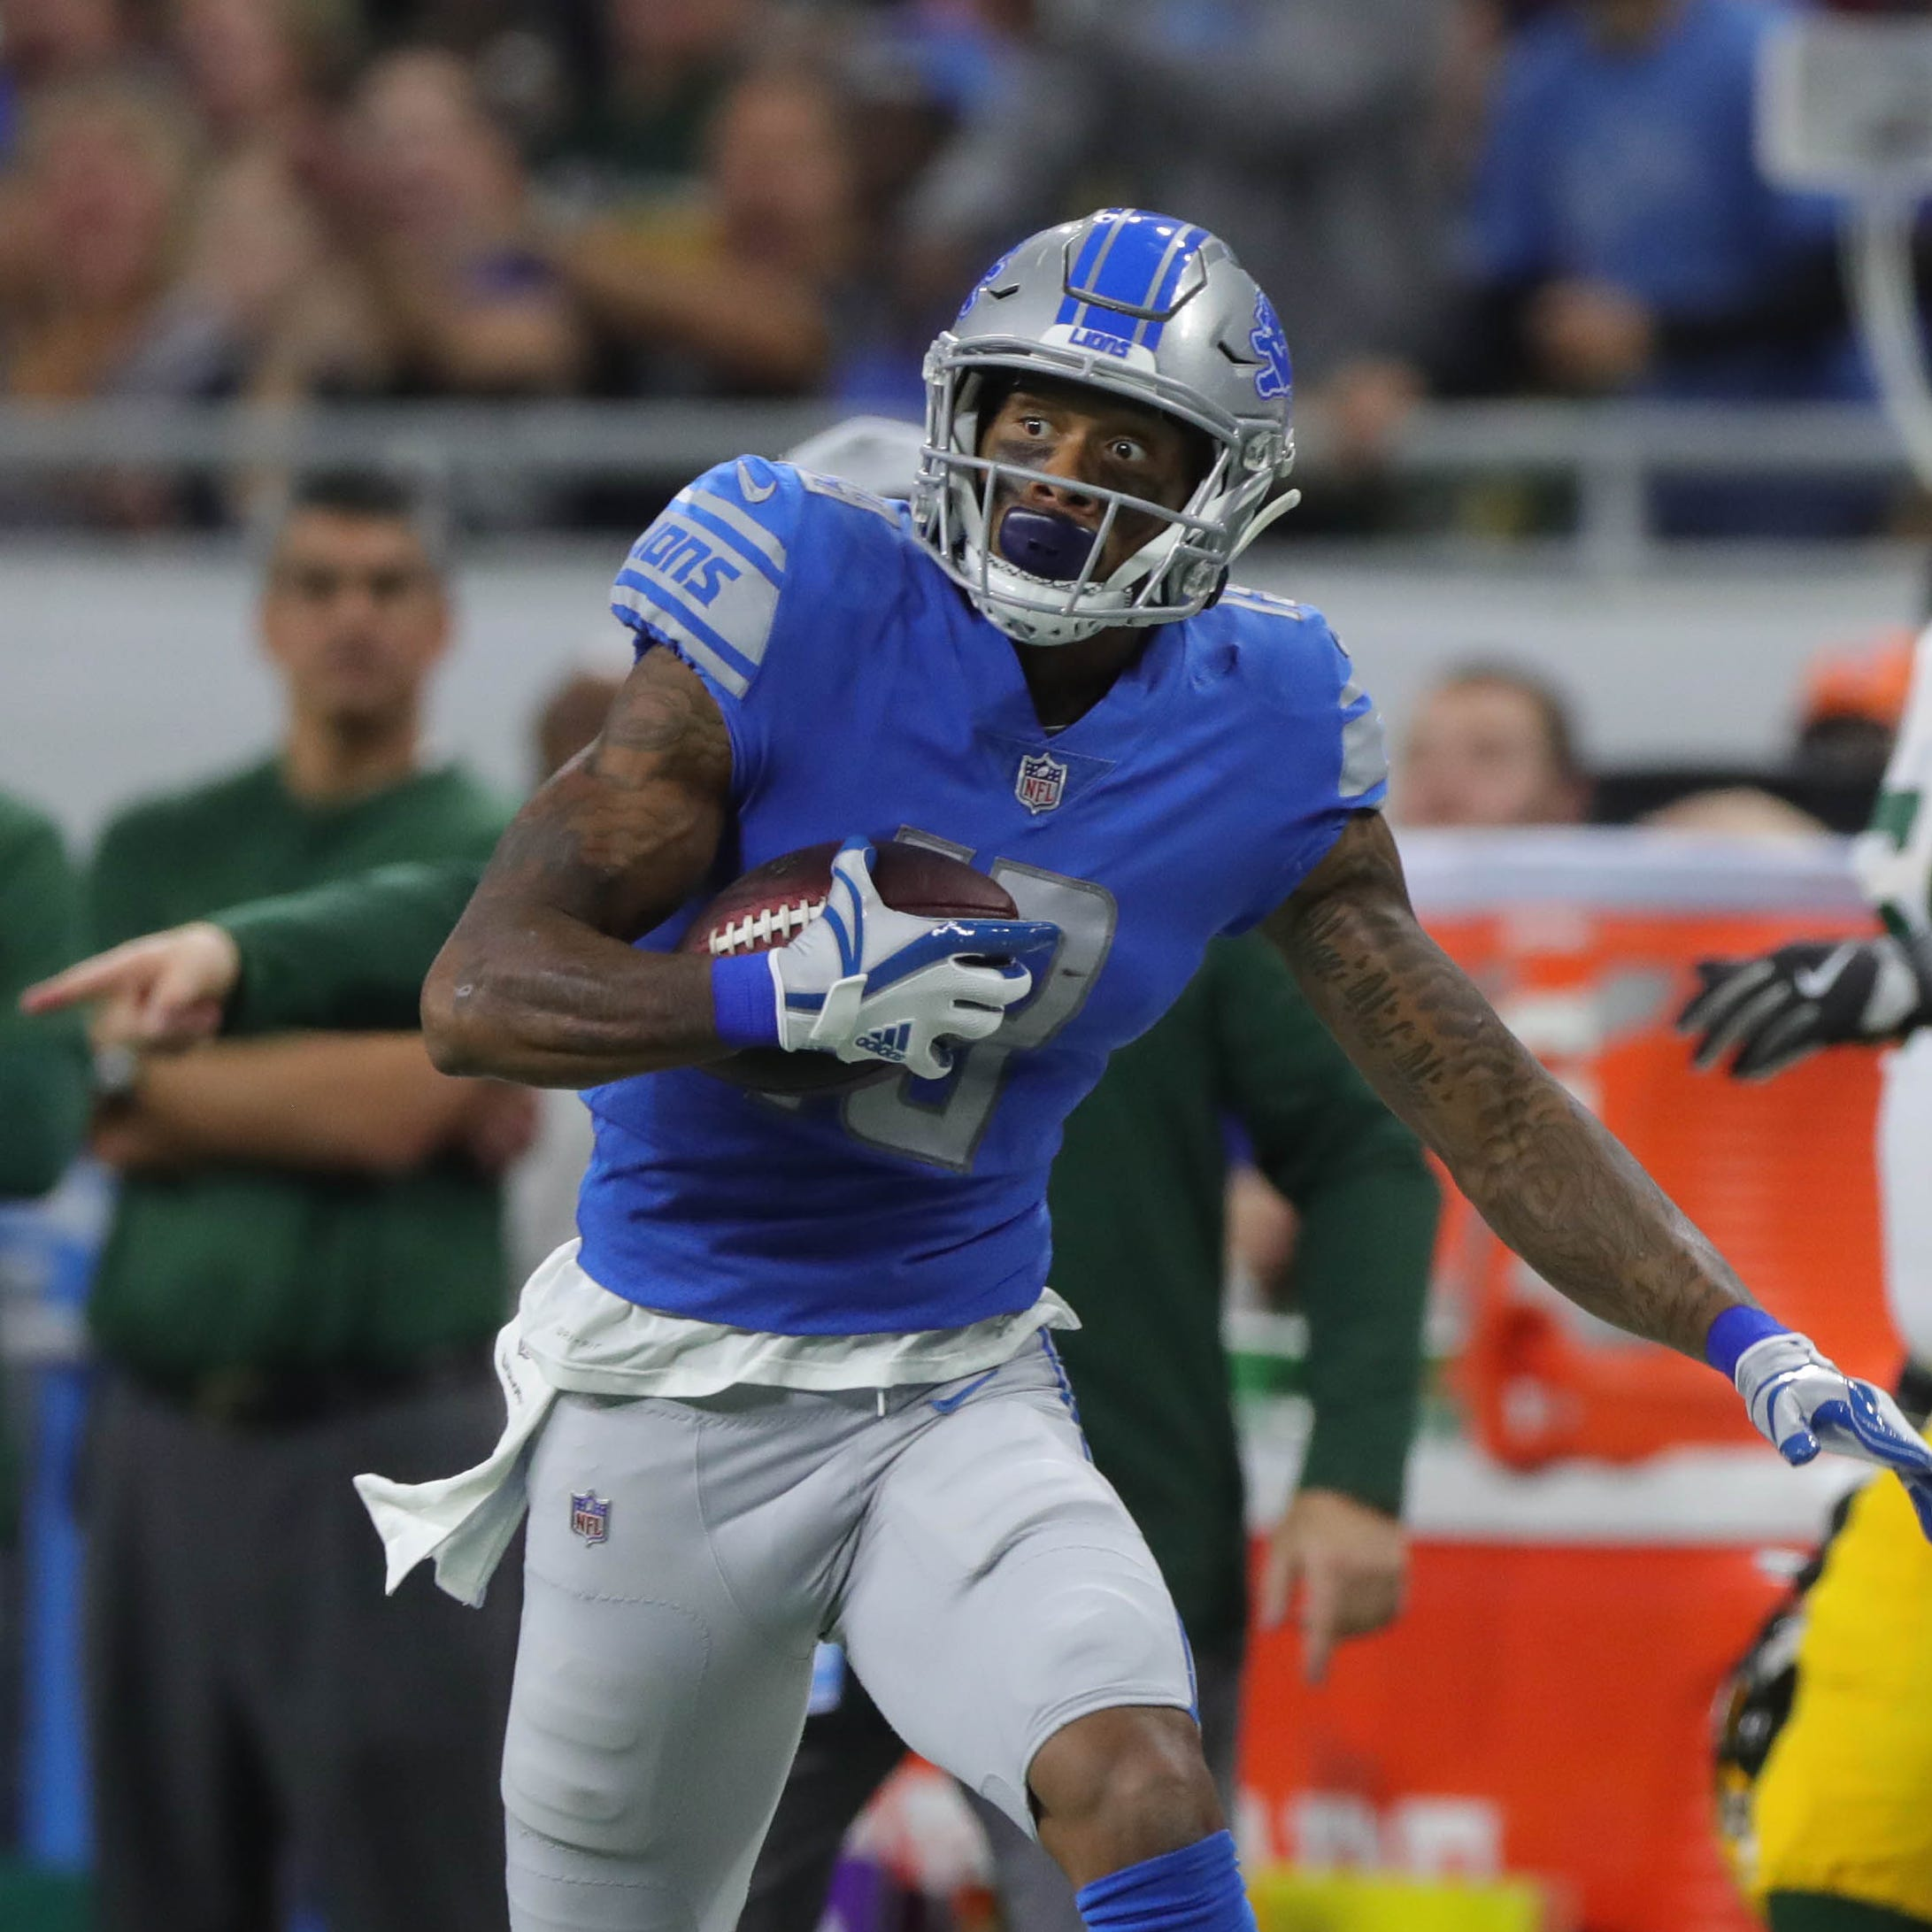 Detroit Lions mailbag: Who has been the best mid-round NFL draft pick?